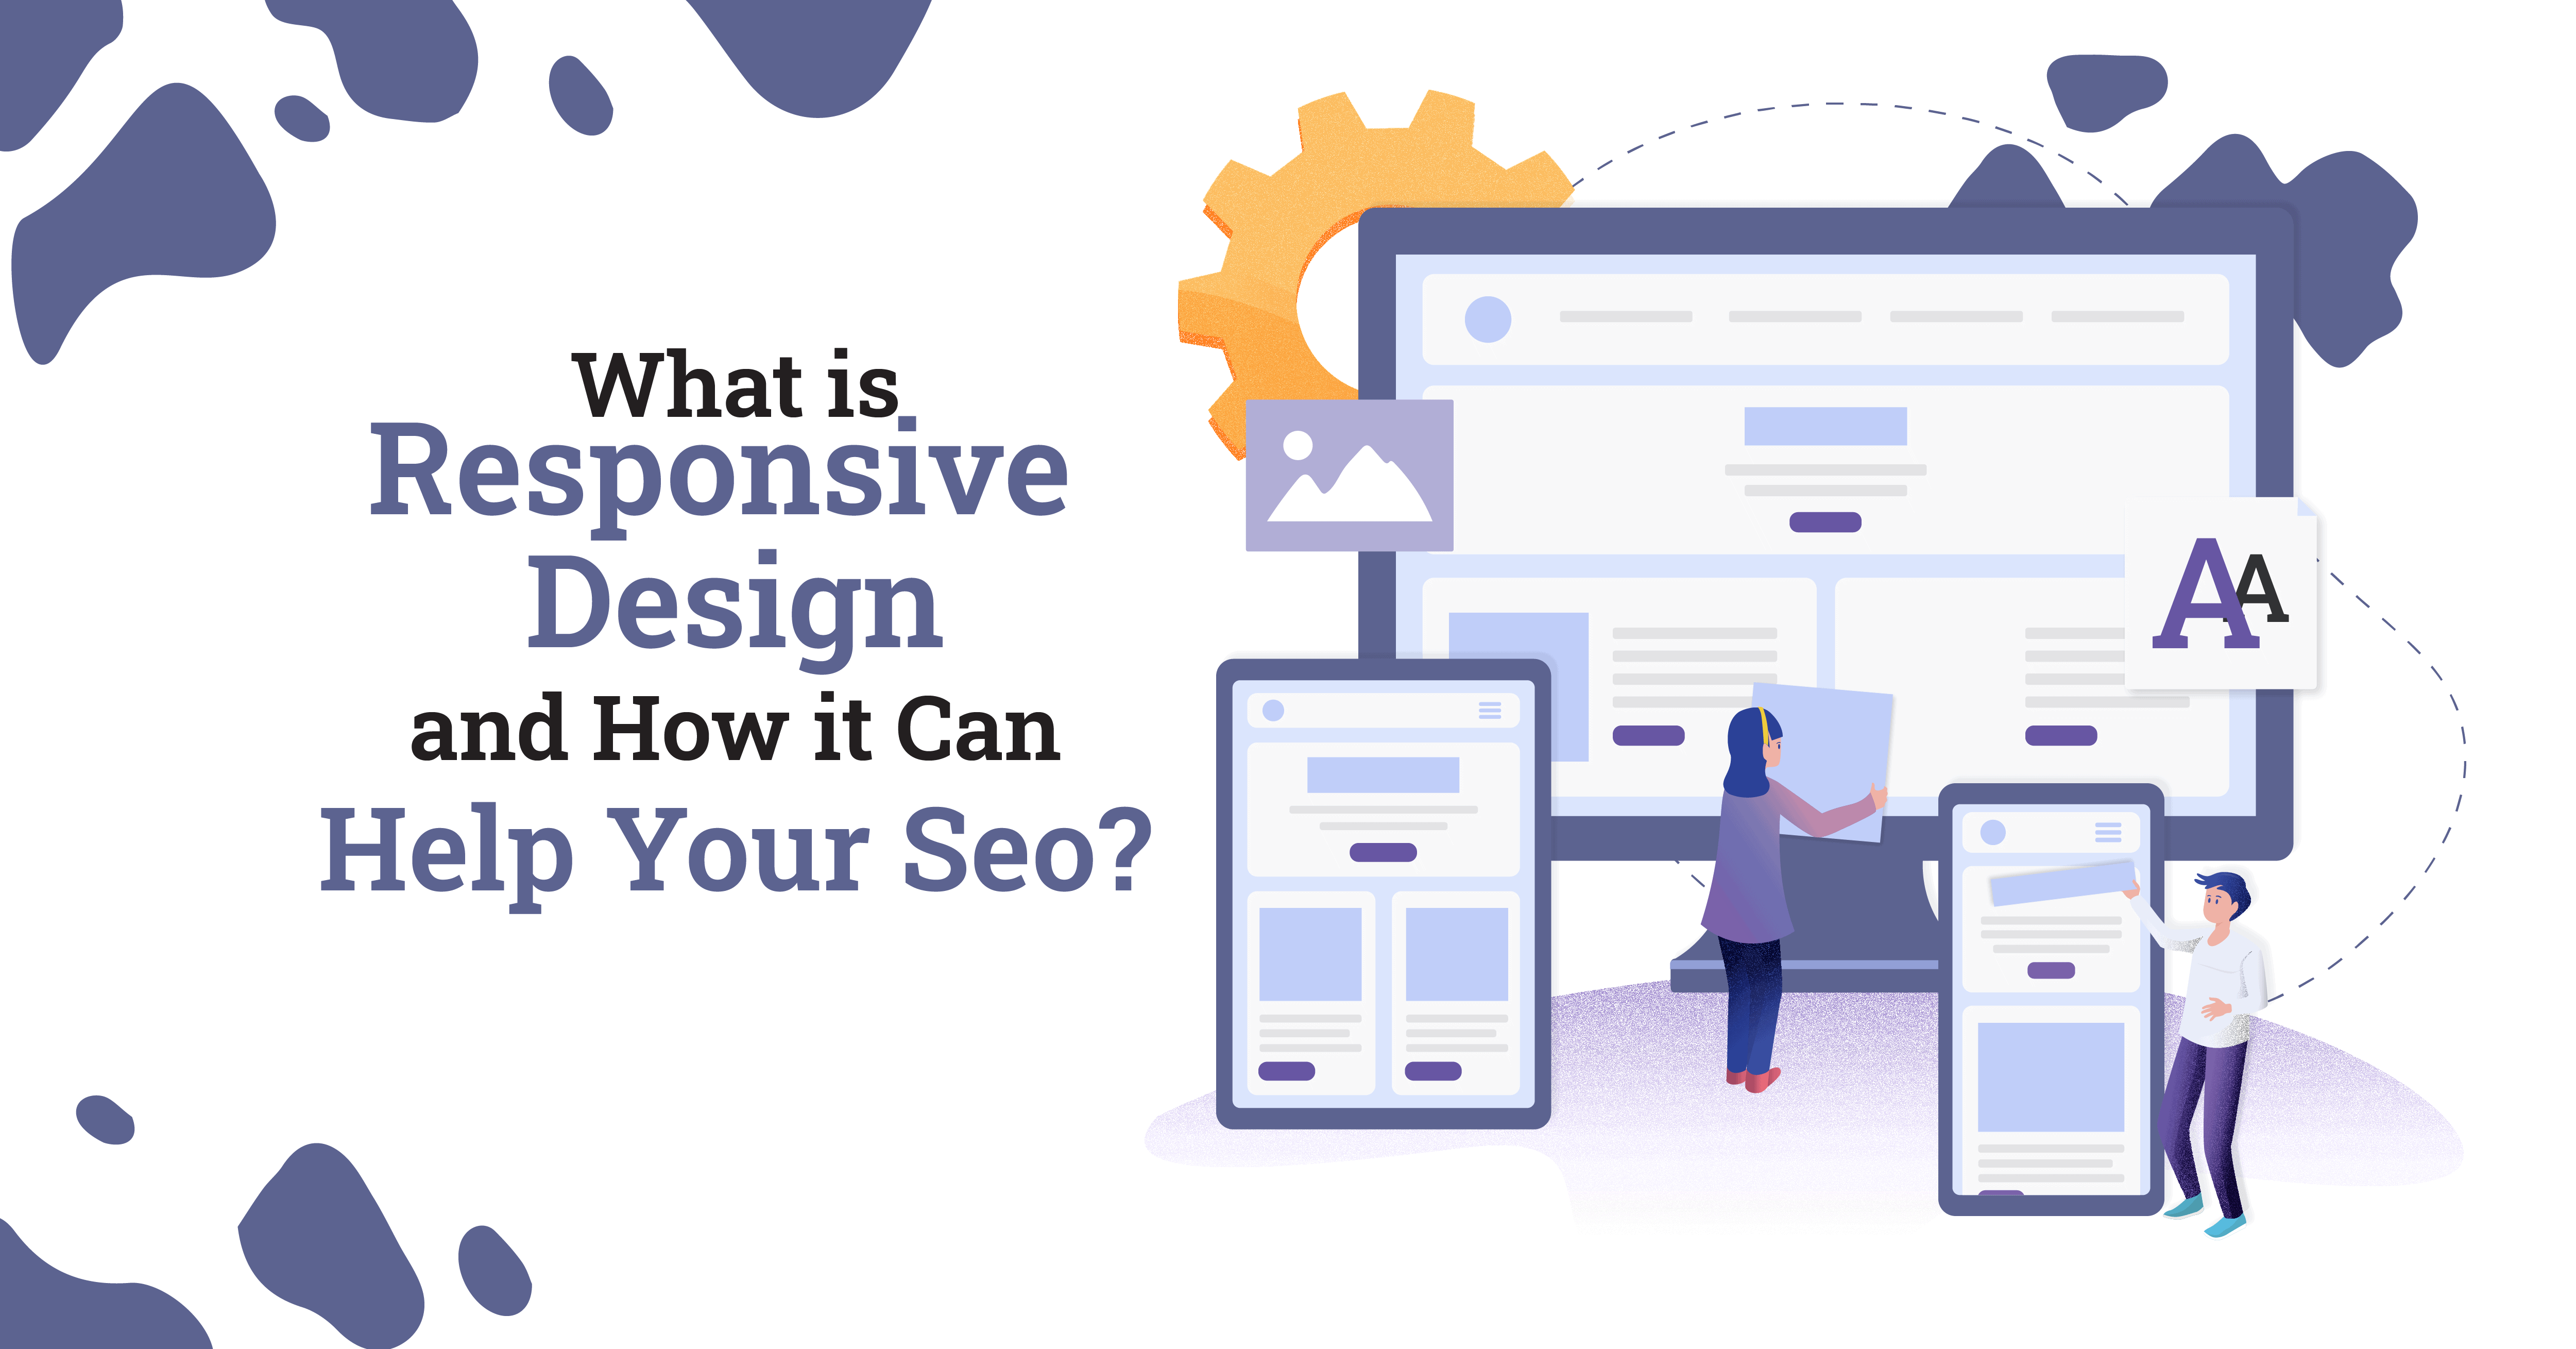 What is Responsive Design and How to Use It